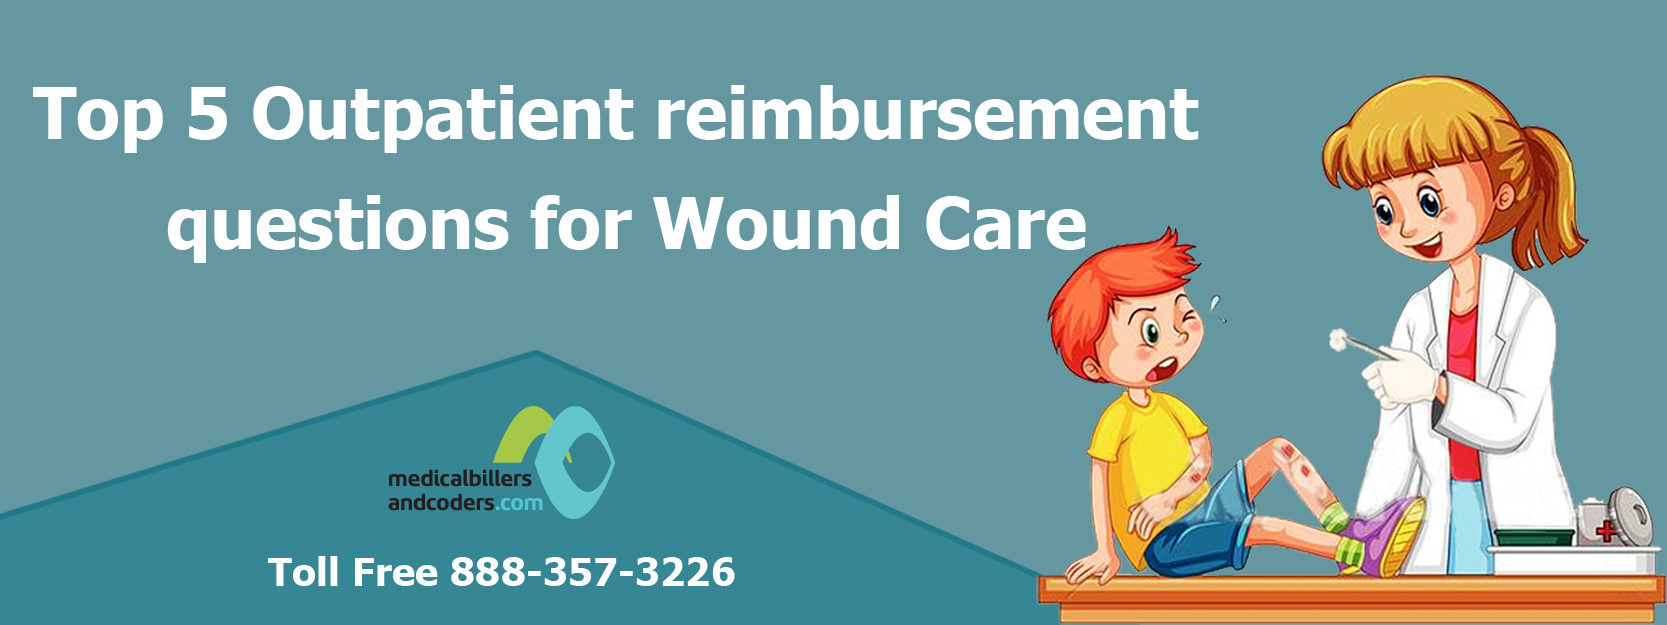 Top-5-Outpatient-reimbursement-questions-for-Wound-Care